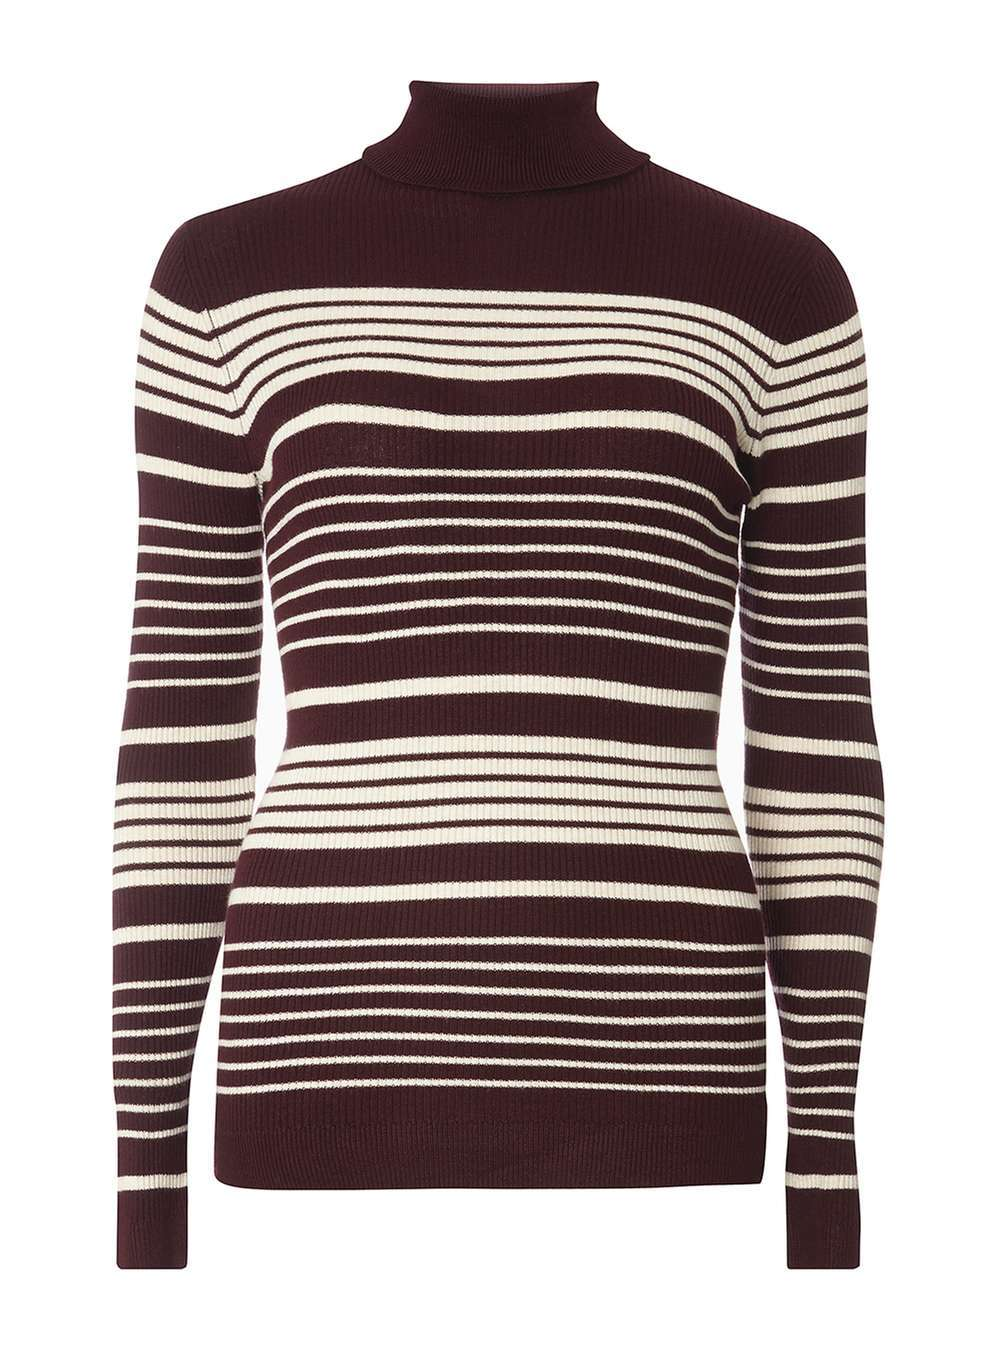 Womens Aubergine Stripe Roll Neck Jumper Purple - pattern: striped; neckline: roll neck; style: standard; secondary colour: white; predominant colour: aubergine; occasions: casual; length: standard; fit: slim fit; sleeve length: long sleeve; sleeve style: standard; texture group: knits/crochet; pattern type: knitted - fine stitch; fibres: viscose/rayon - mix; multicoloured: multicoloured; season: a/w 2016; wardrobe: highlight